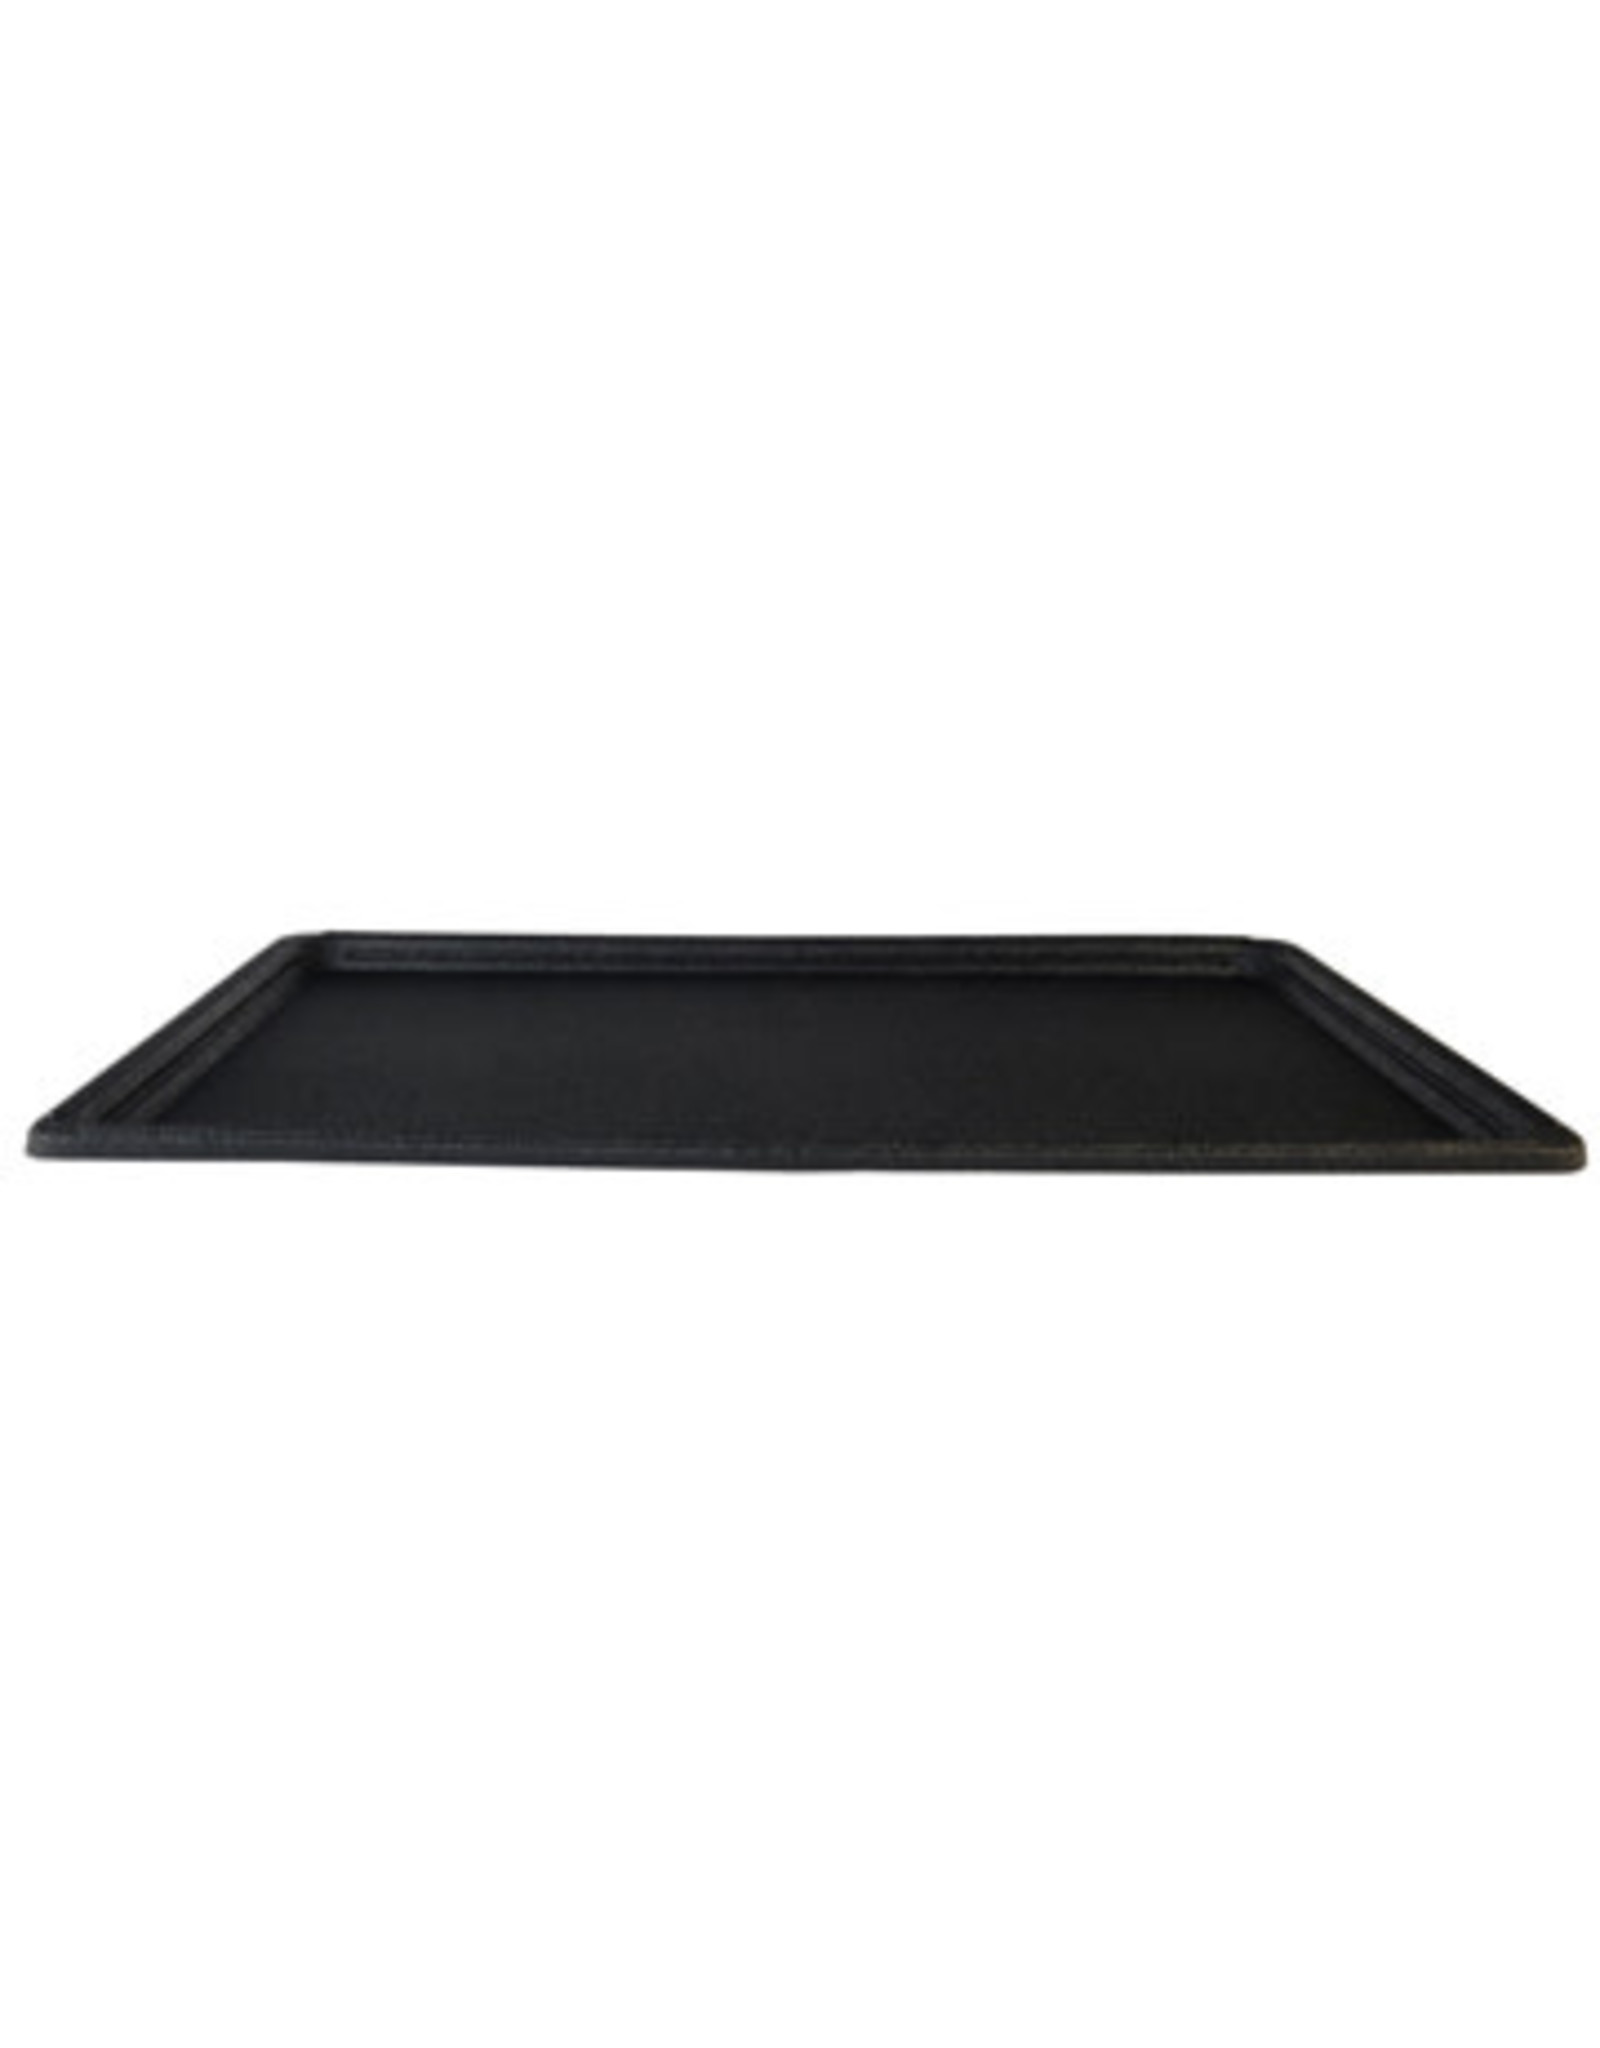 DogIt Dog Crate Replacement Tray XL for 90565